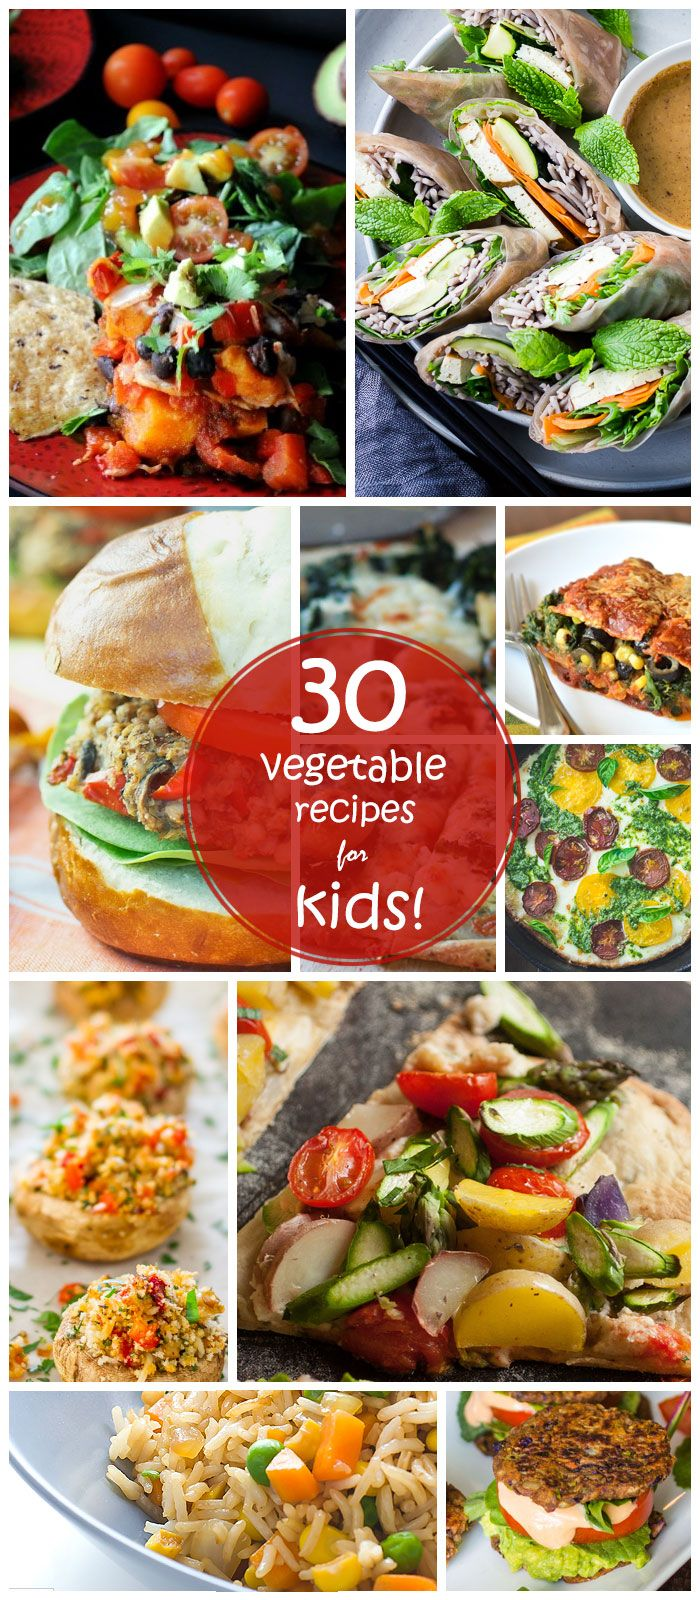 15 Easy Vegetarian Recipes For Kids For Dinner Becoming